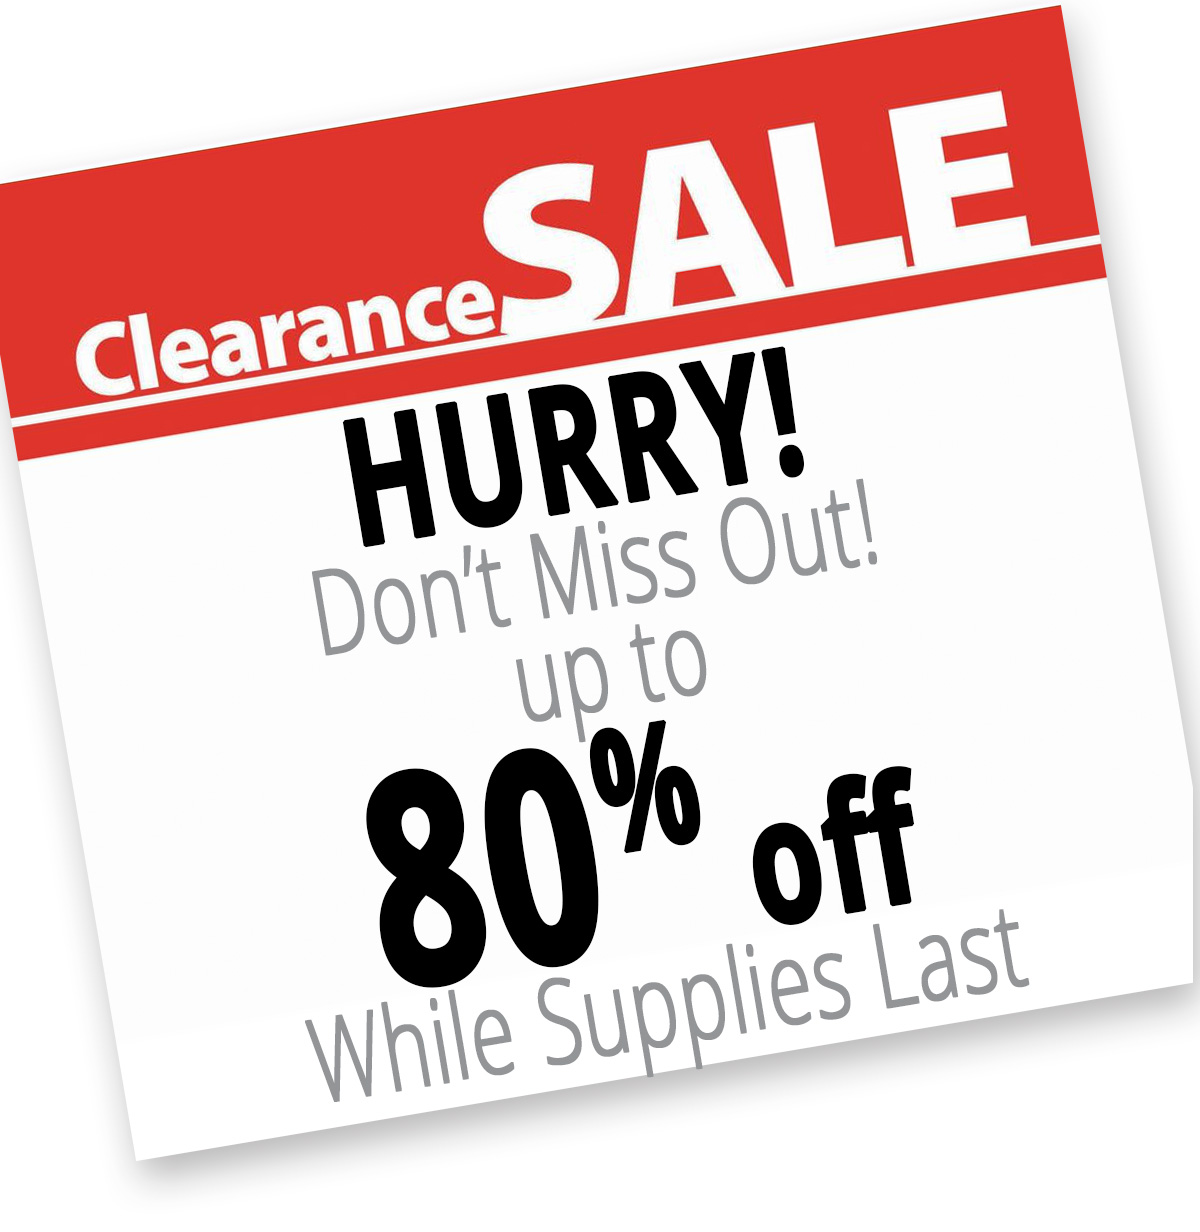 Check out our Clearance items at up to 80% off while supplies last!